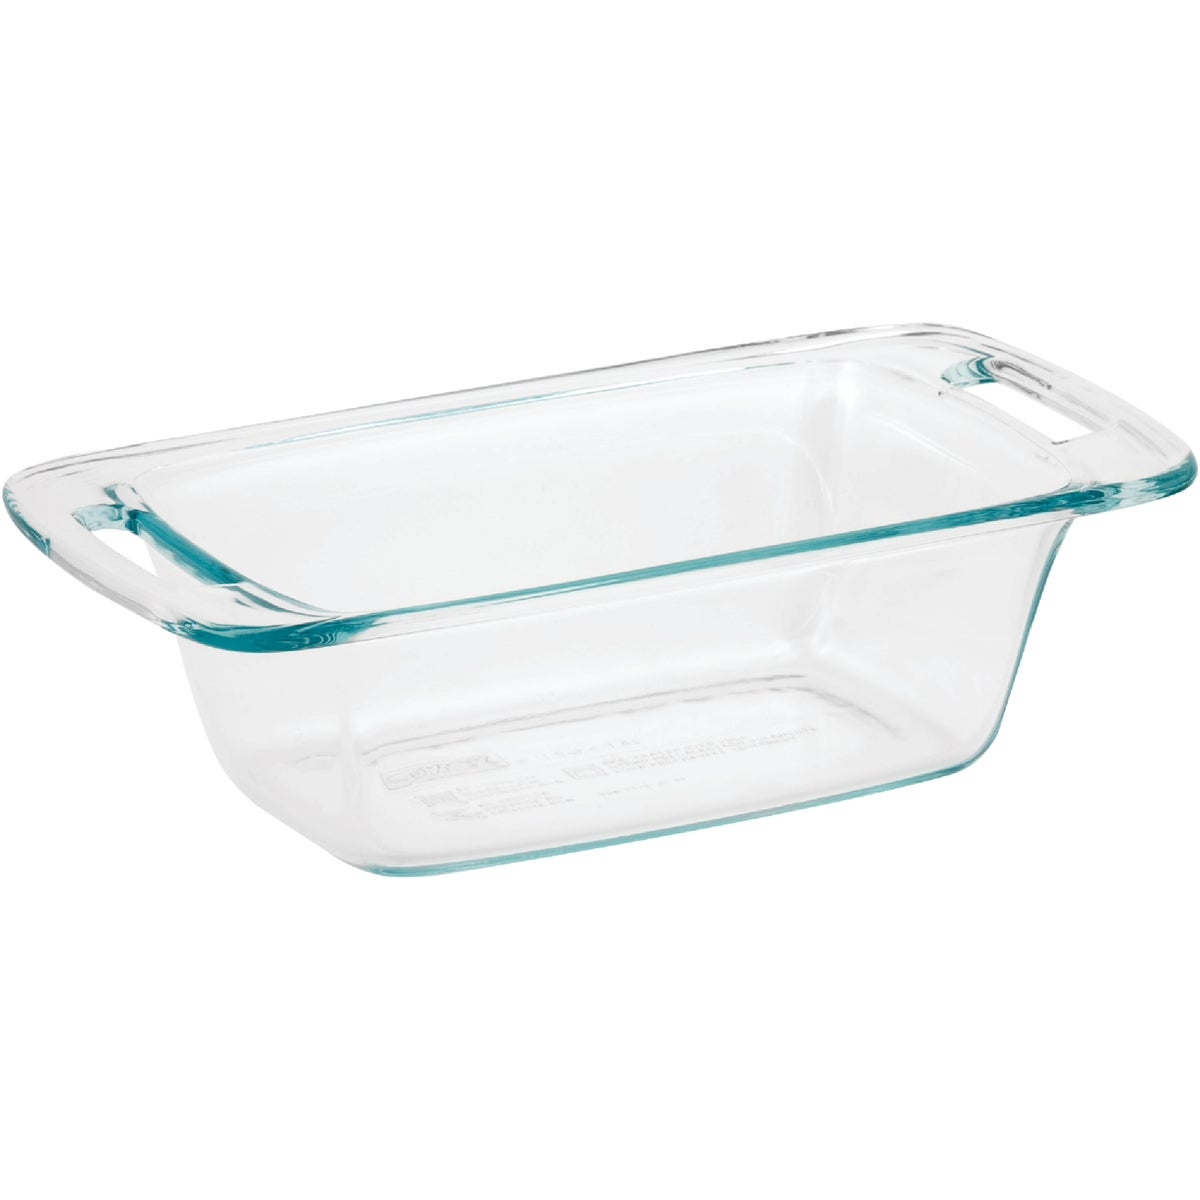 1-1/2QT LOAF BAKING DISH - 1085799 by World Kitchen